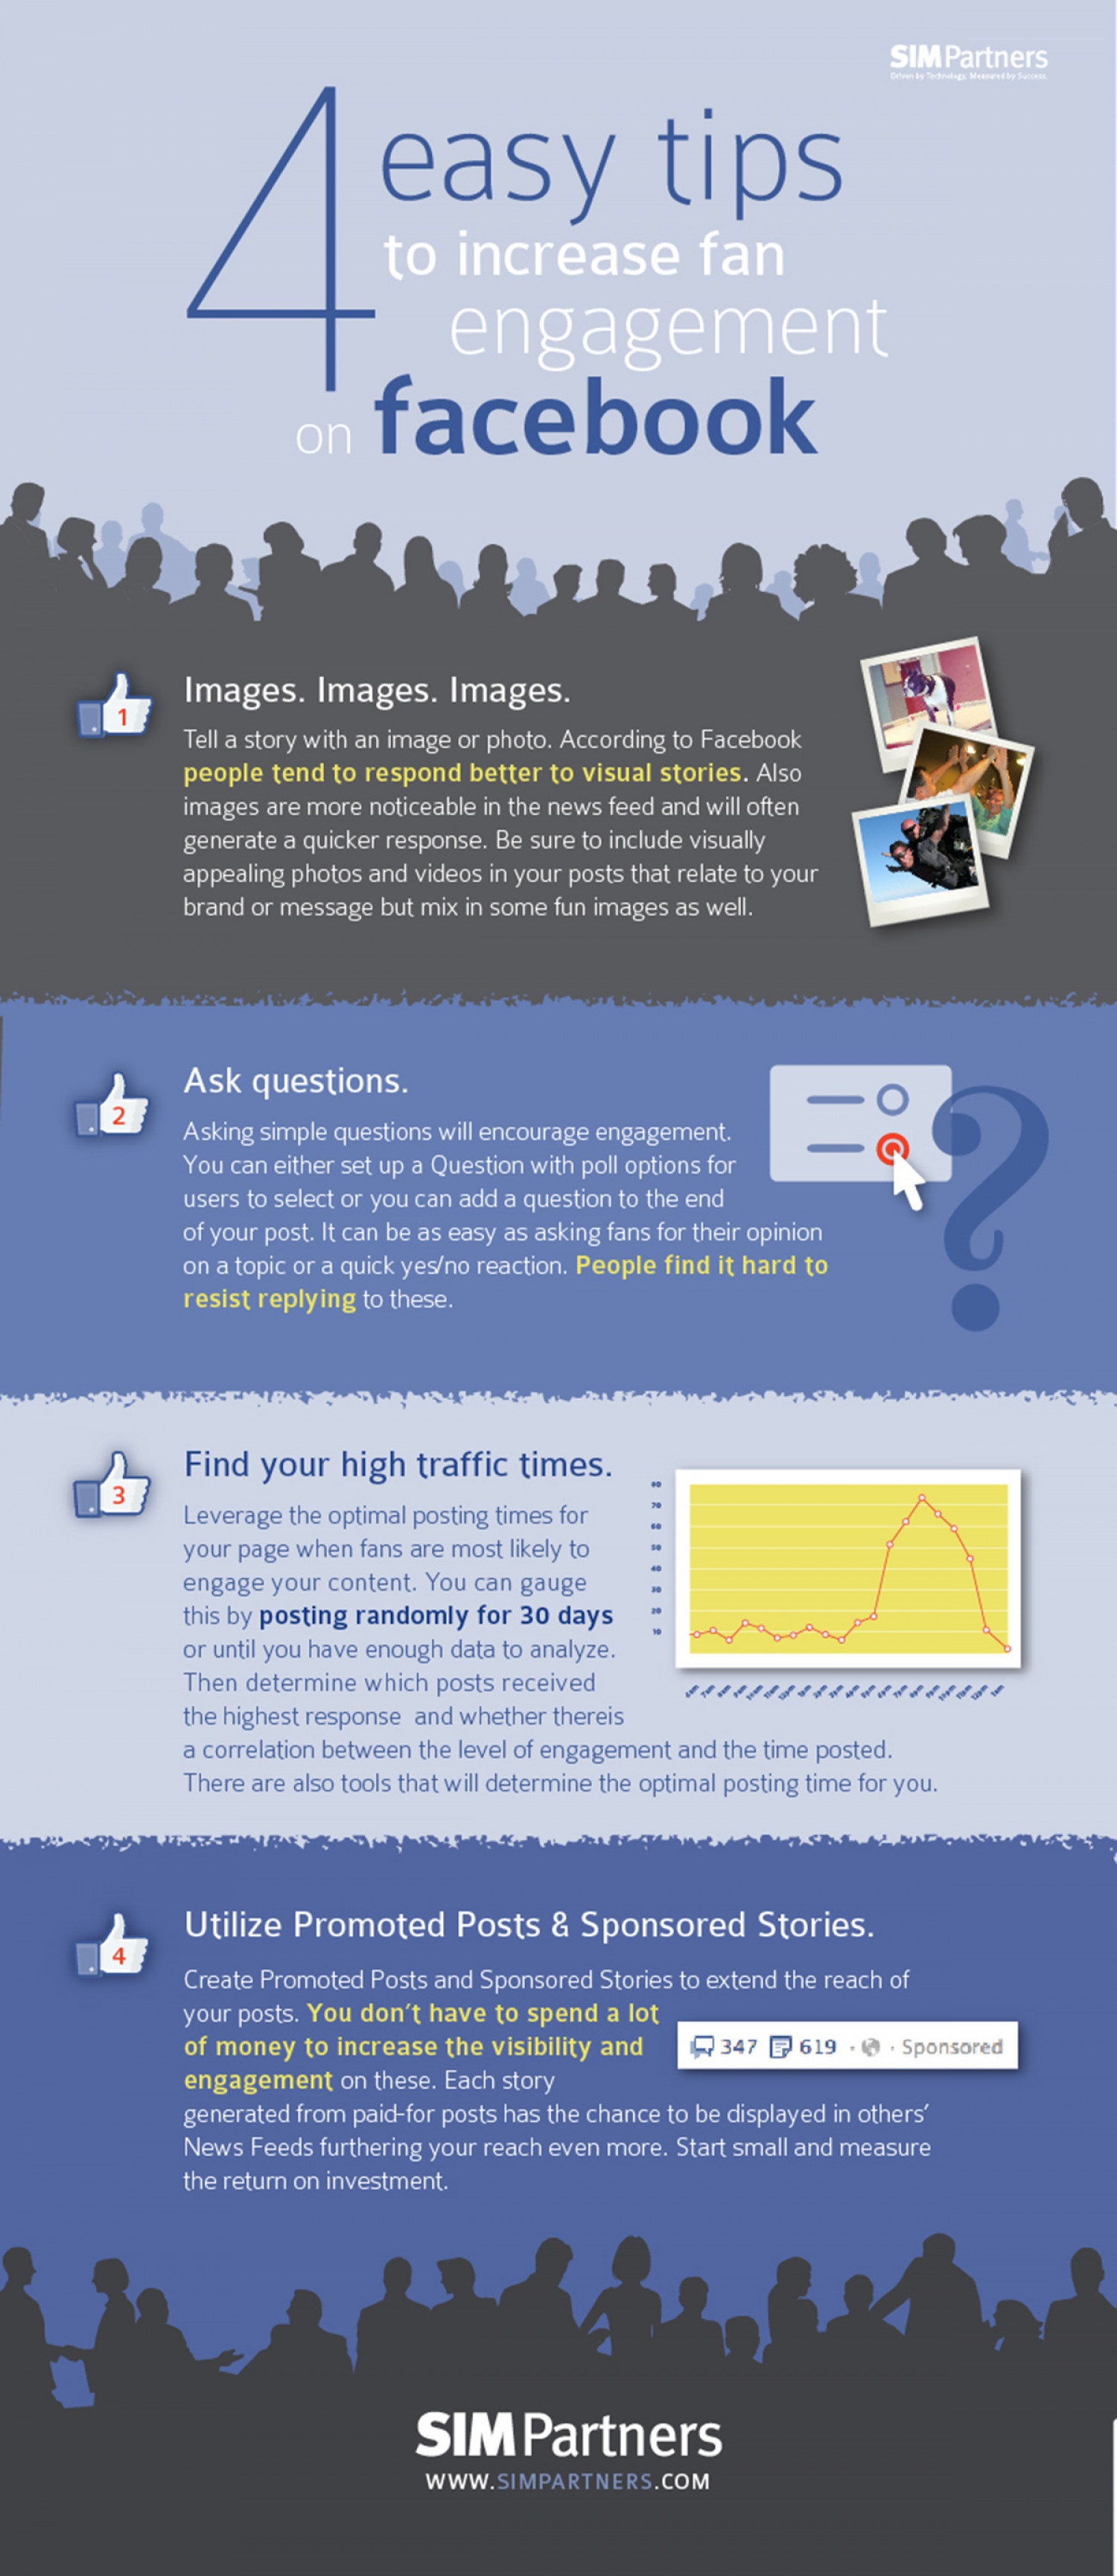 4 Easy Tips to Increase Fan Engagement on Facebook Infographic